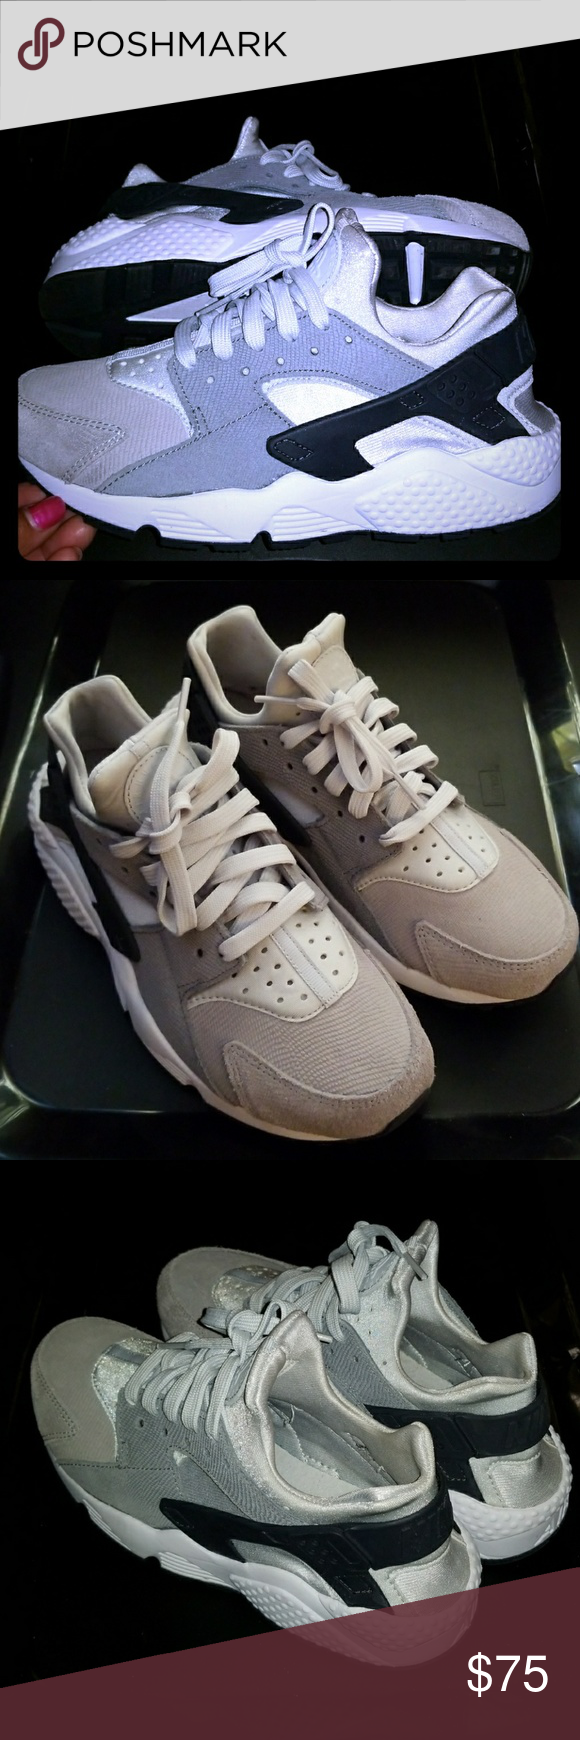 389bbb8476142 ... cheap nike air huarache womens selected style pure platinum clear grey  anthracite 86a55 b7687